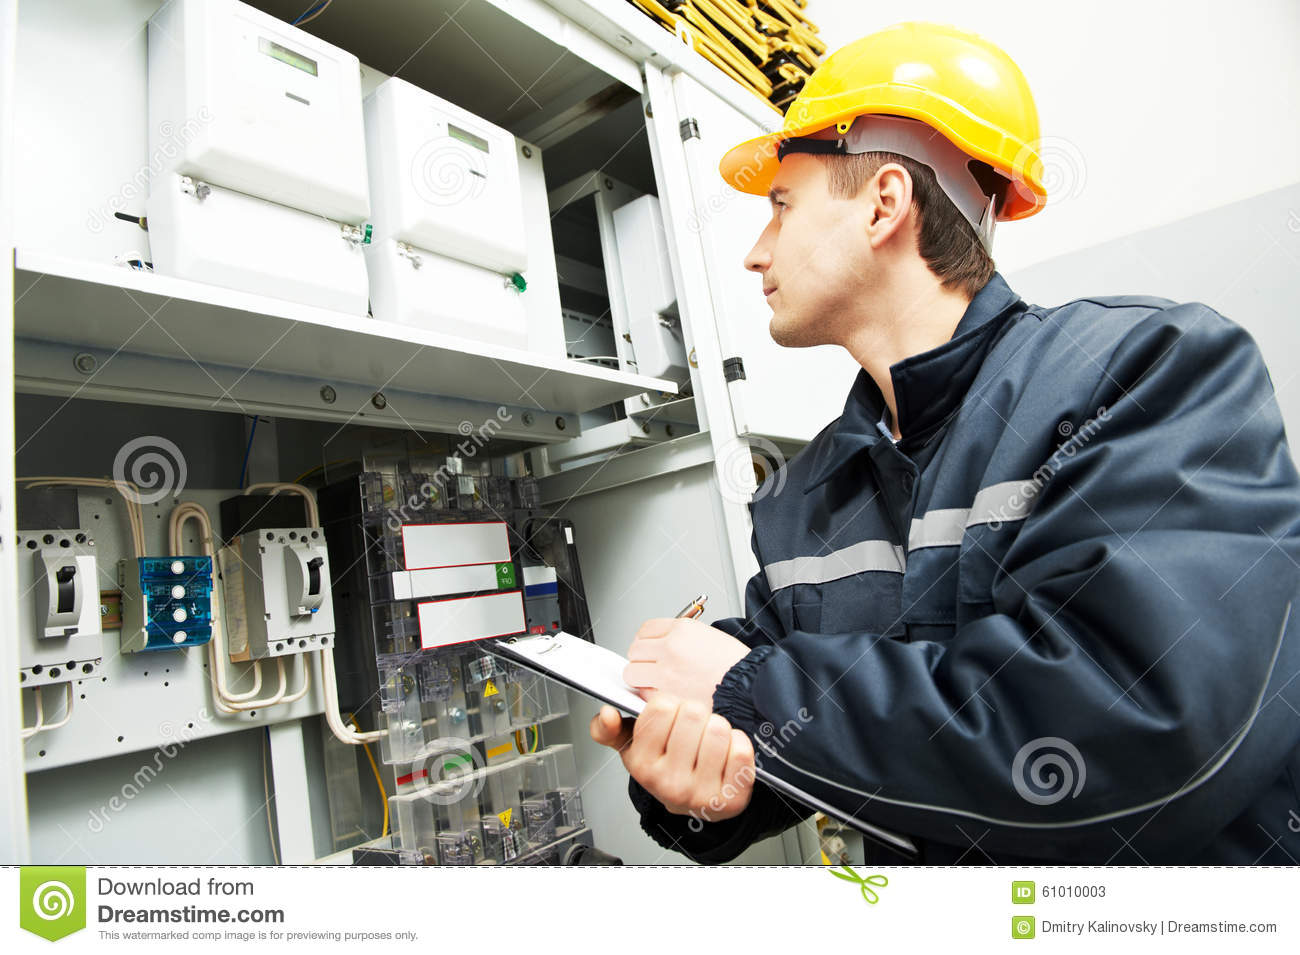 how to become an electrical inspector